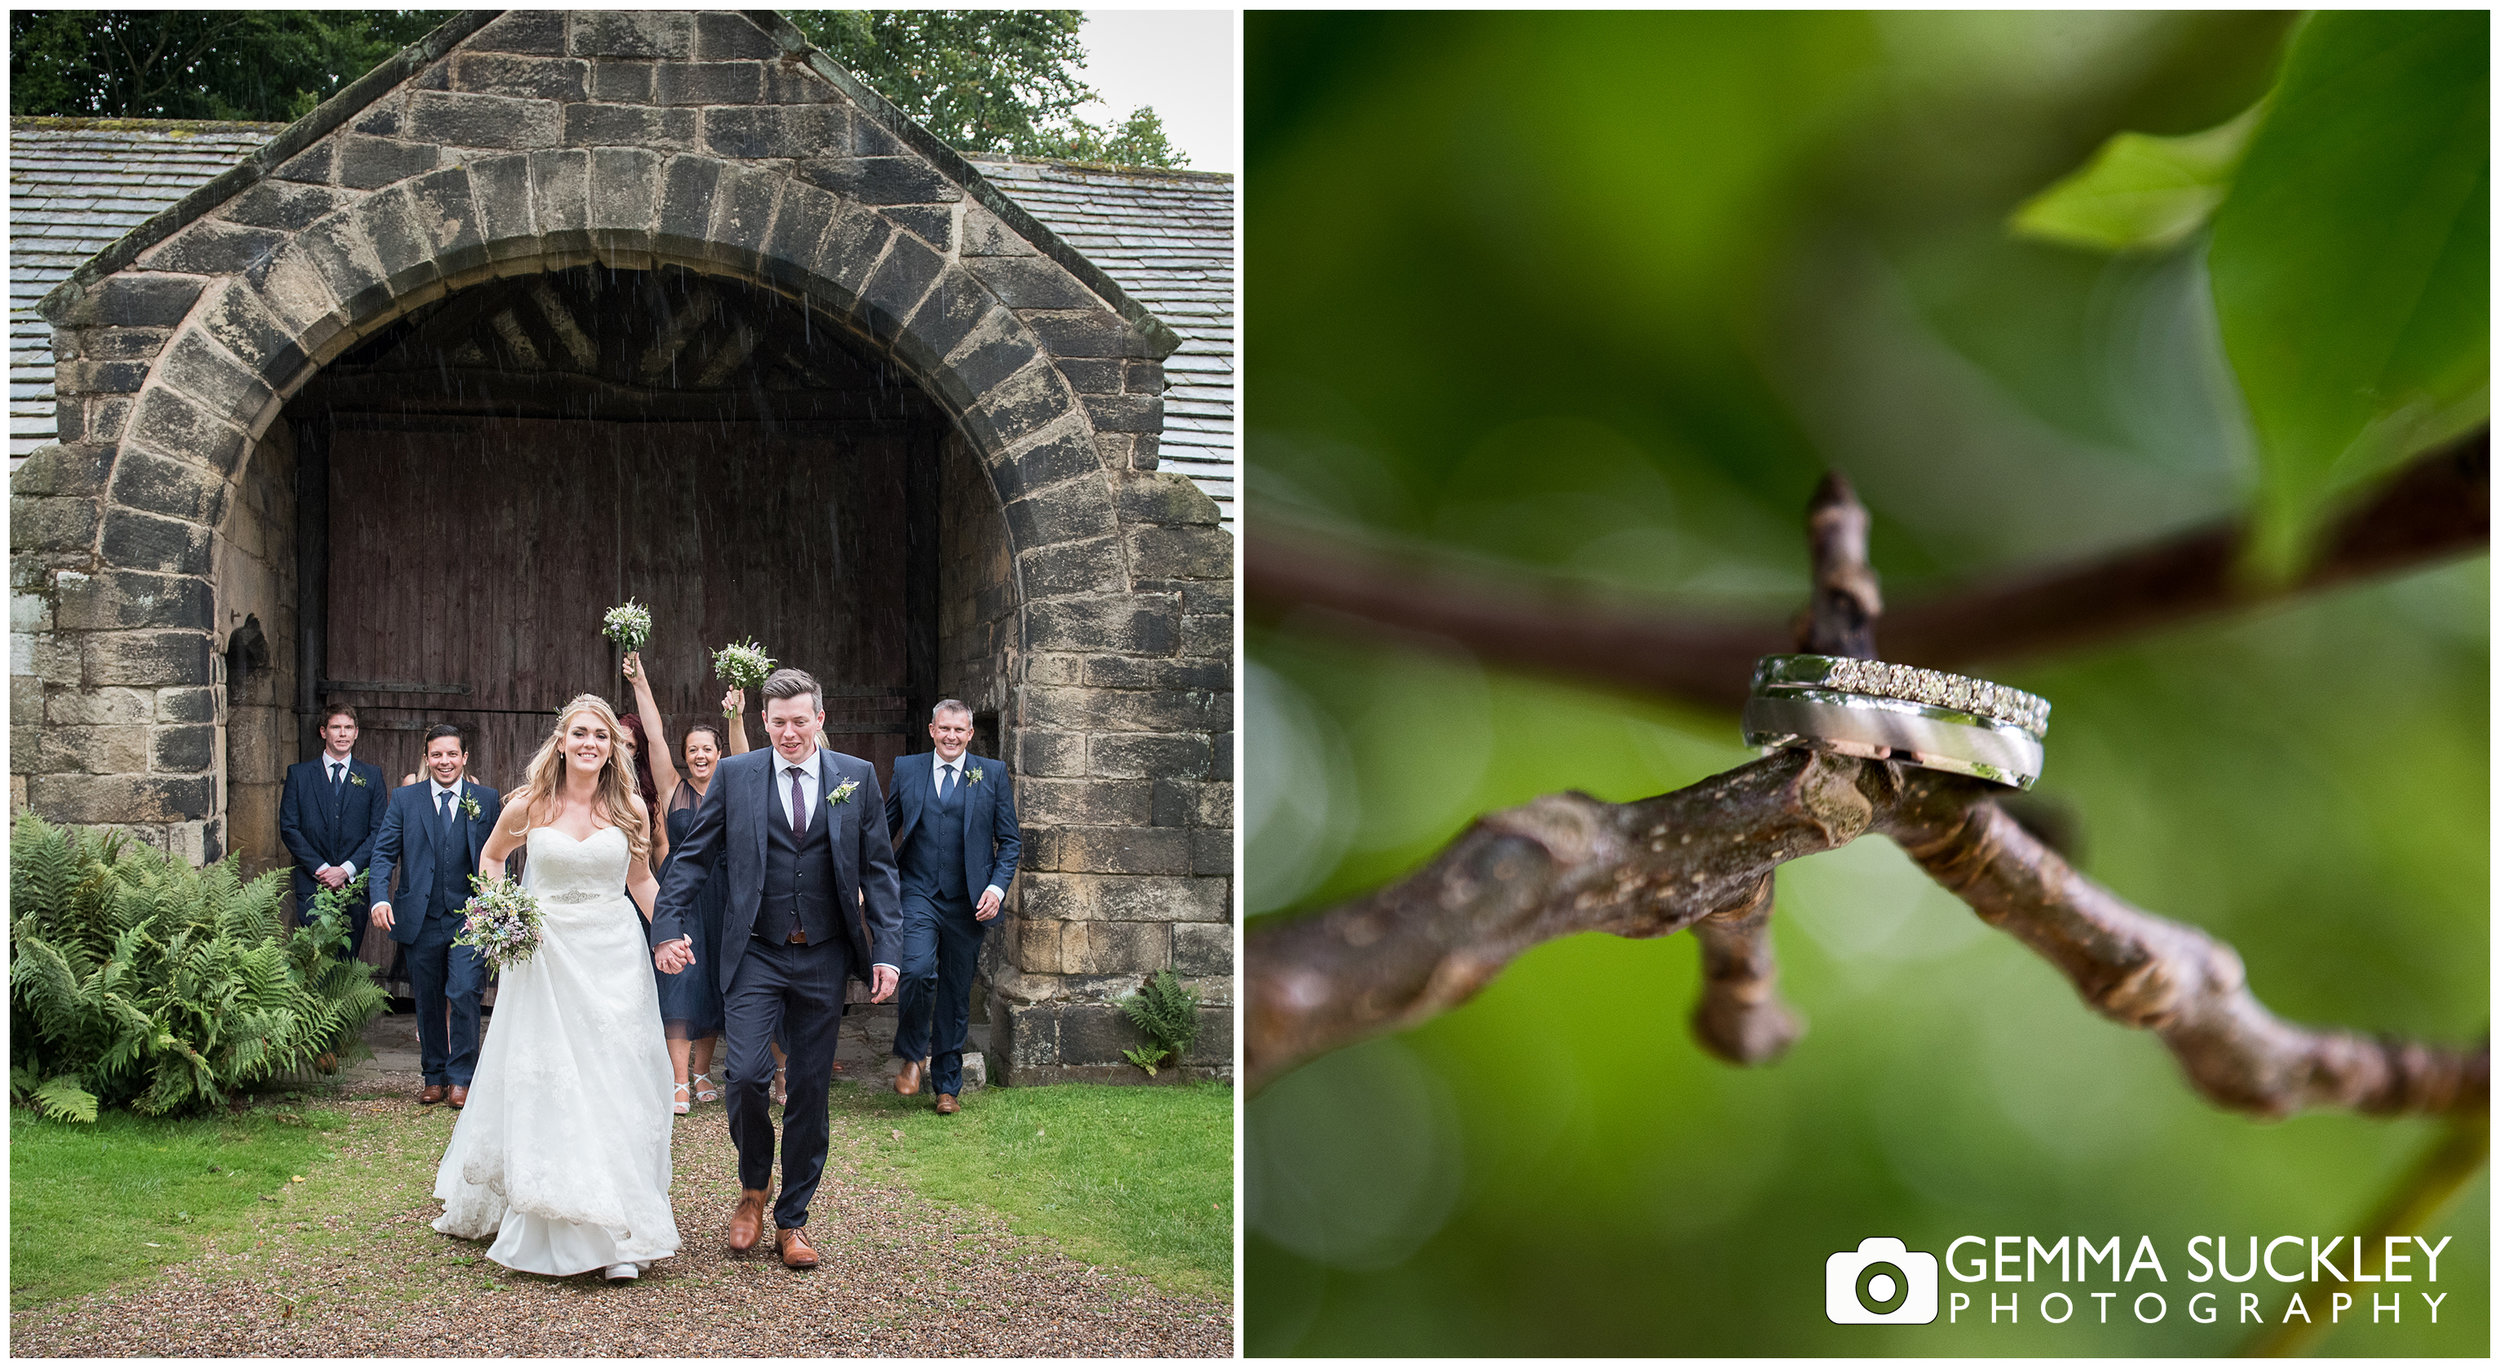 barn-weddings-at-east-riddlesden-hall-69-©gemmasuckleyphotography.jpg